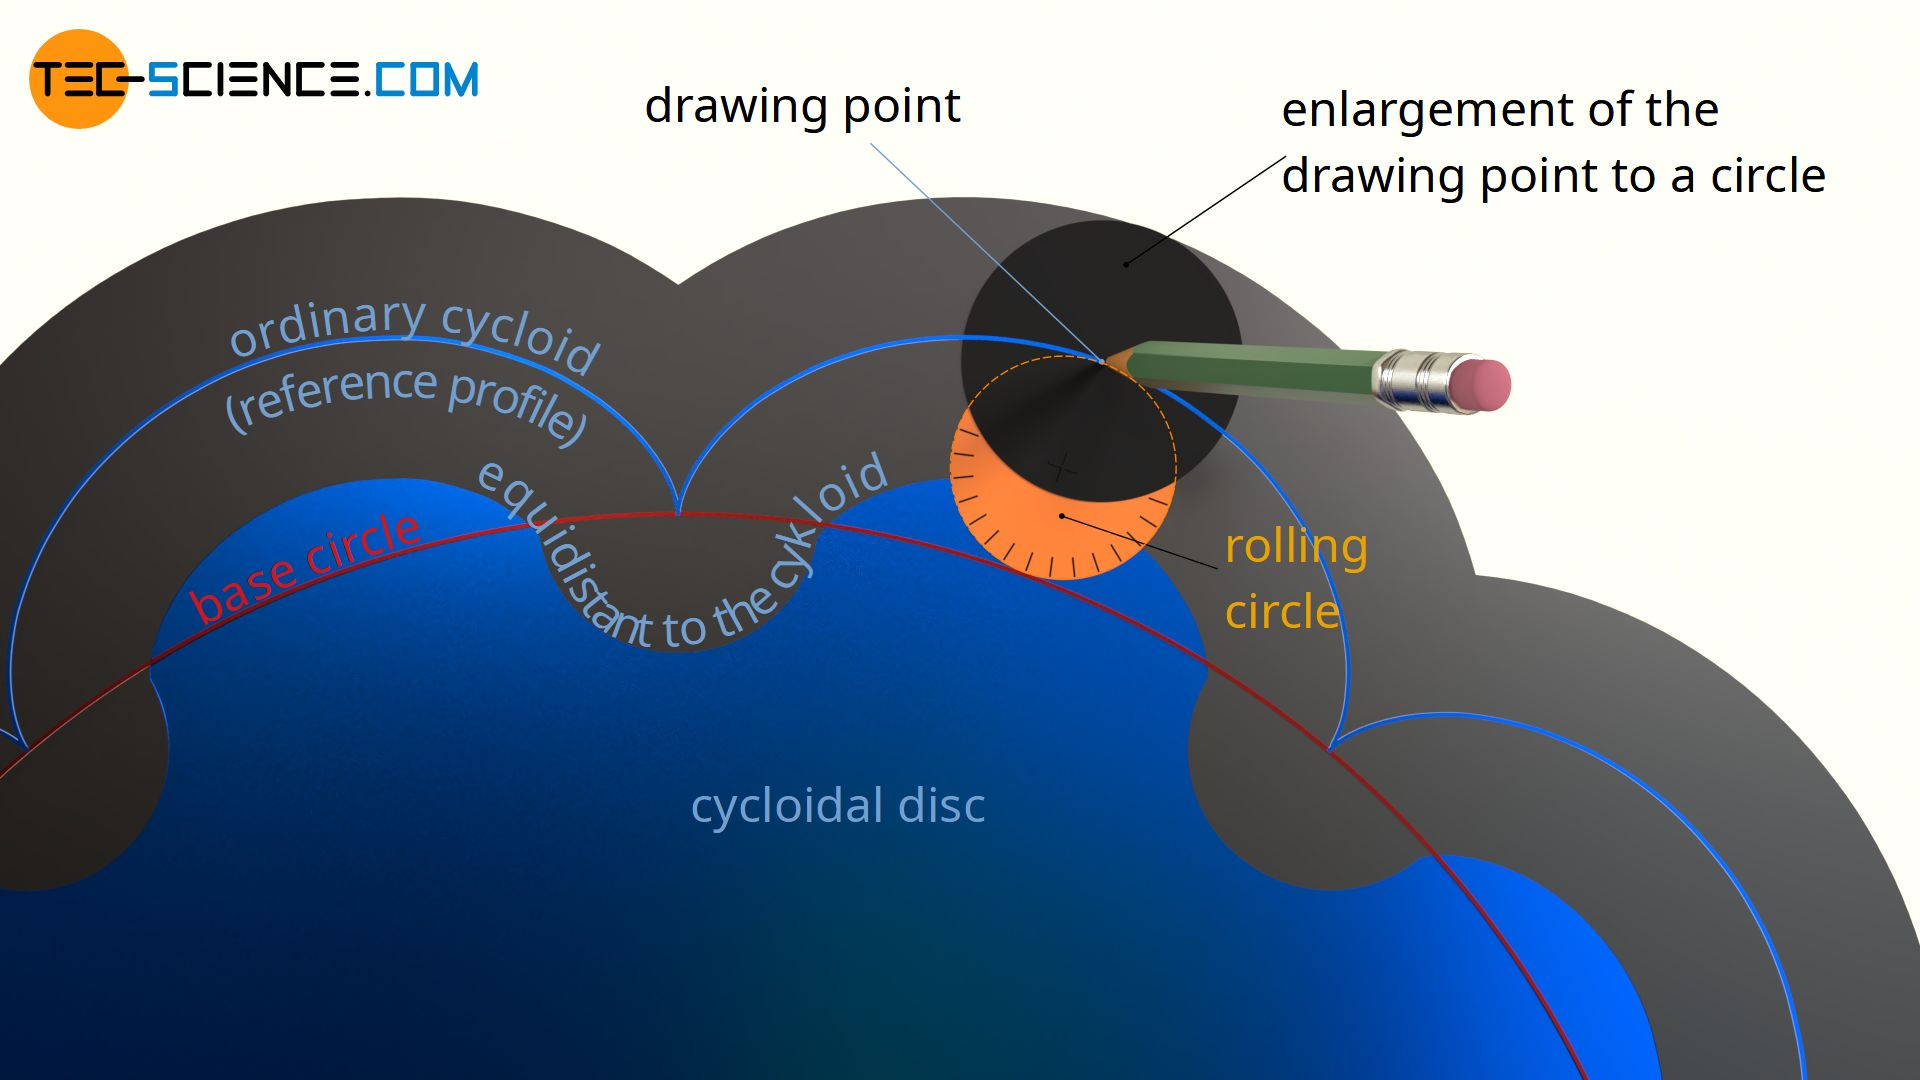 Design of the cycloidal disc with an ordinary cycloid